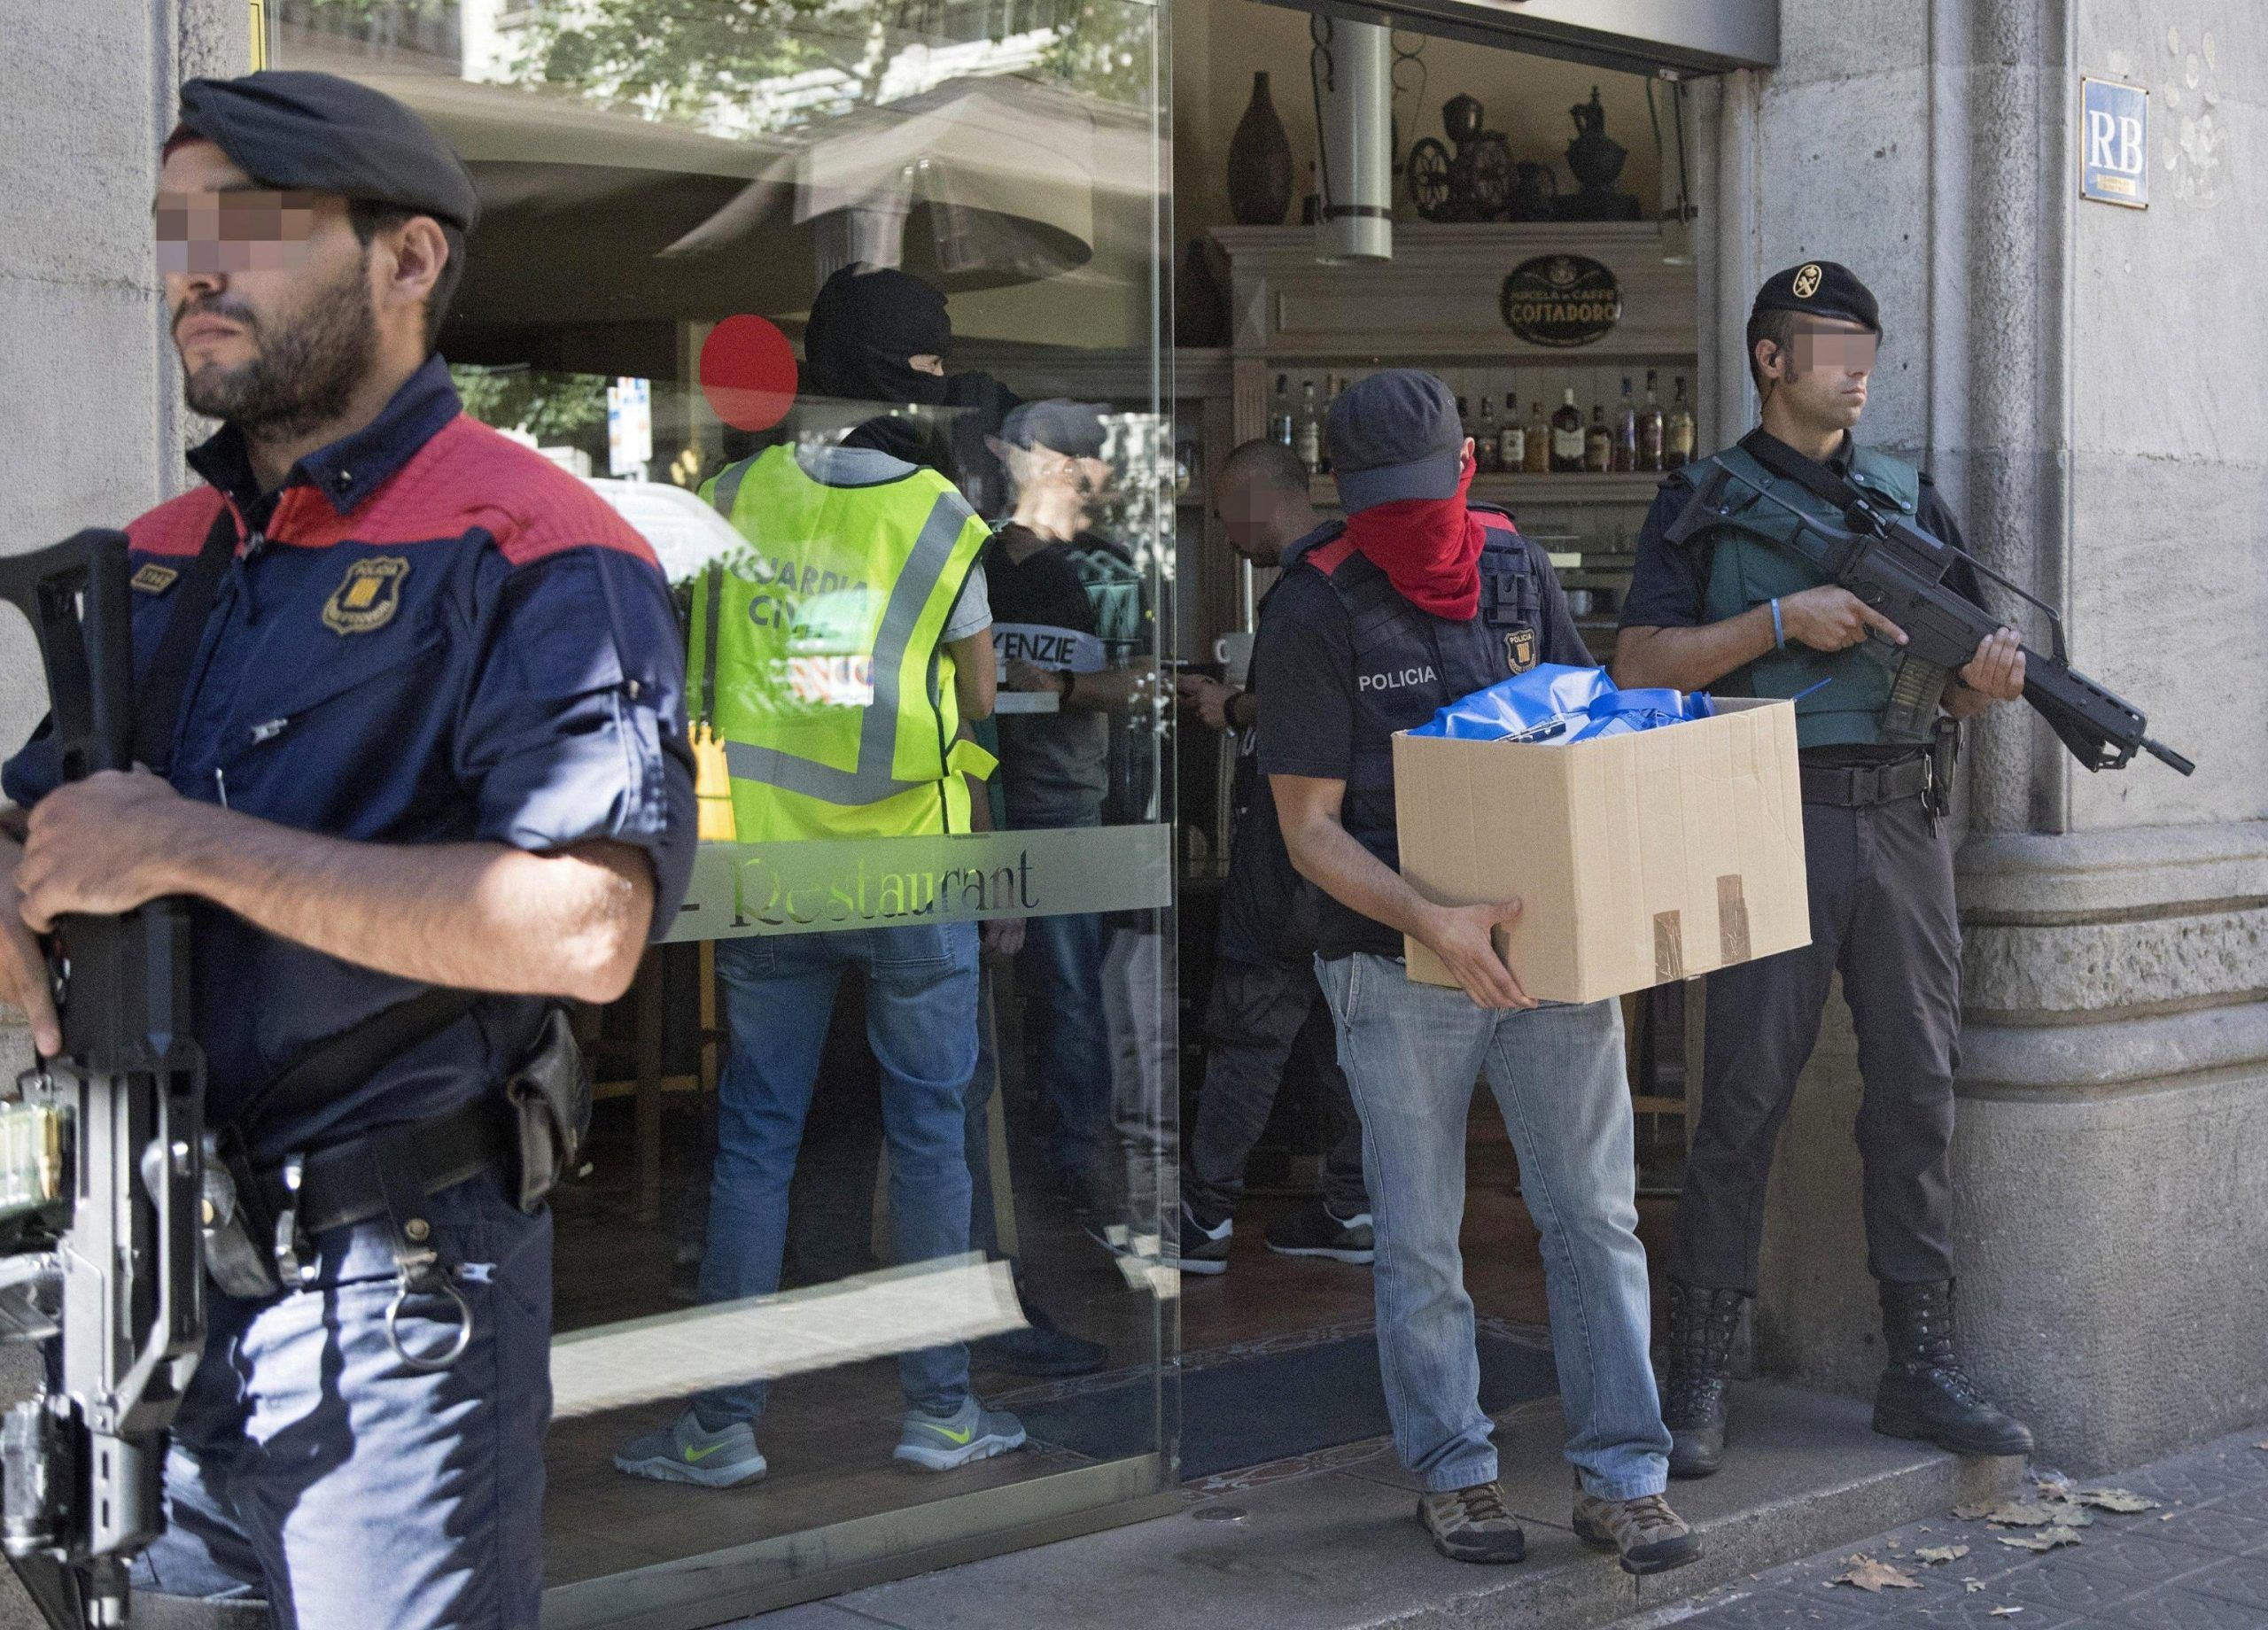 Police operation against Camorra gang in Barcelona